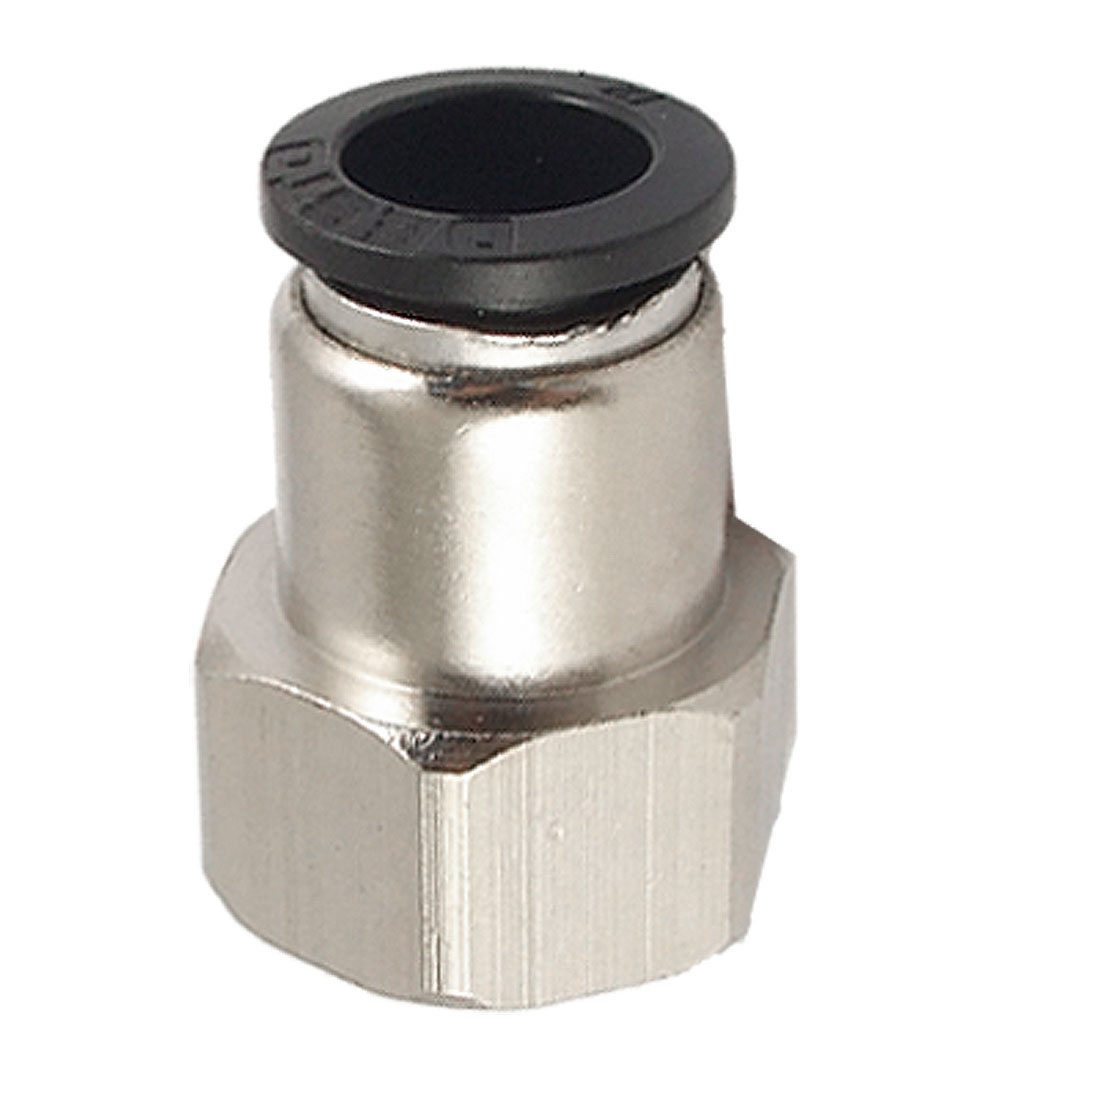 12mm OD Tube to 18mm F Thread Full Port Quick Coupling Fitting